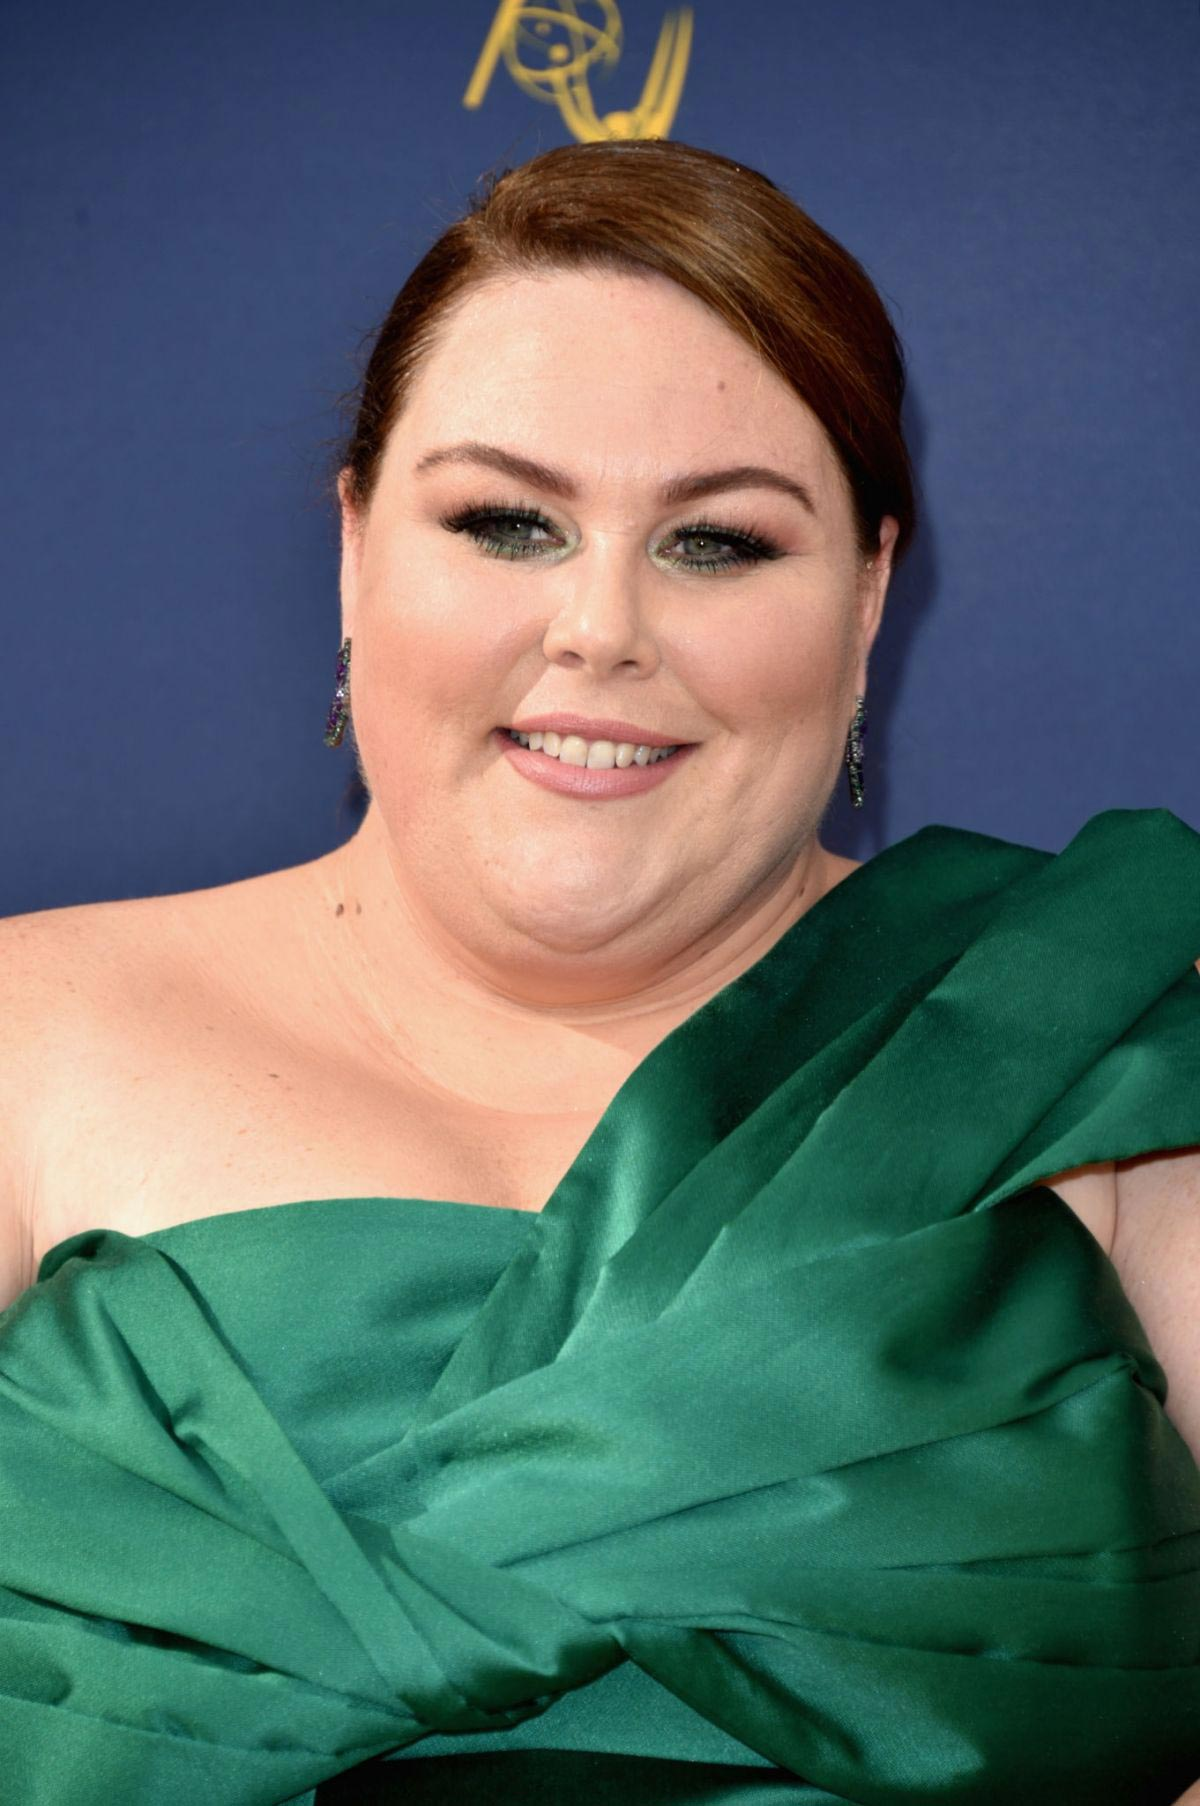 Chrissy Metz at Emmy Awards 2018 in Los Angeles 2018/09/17 1